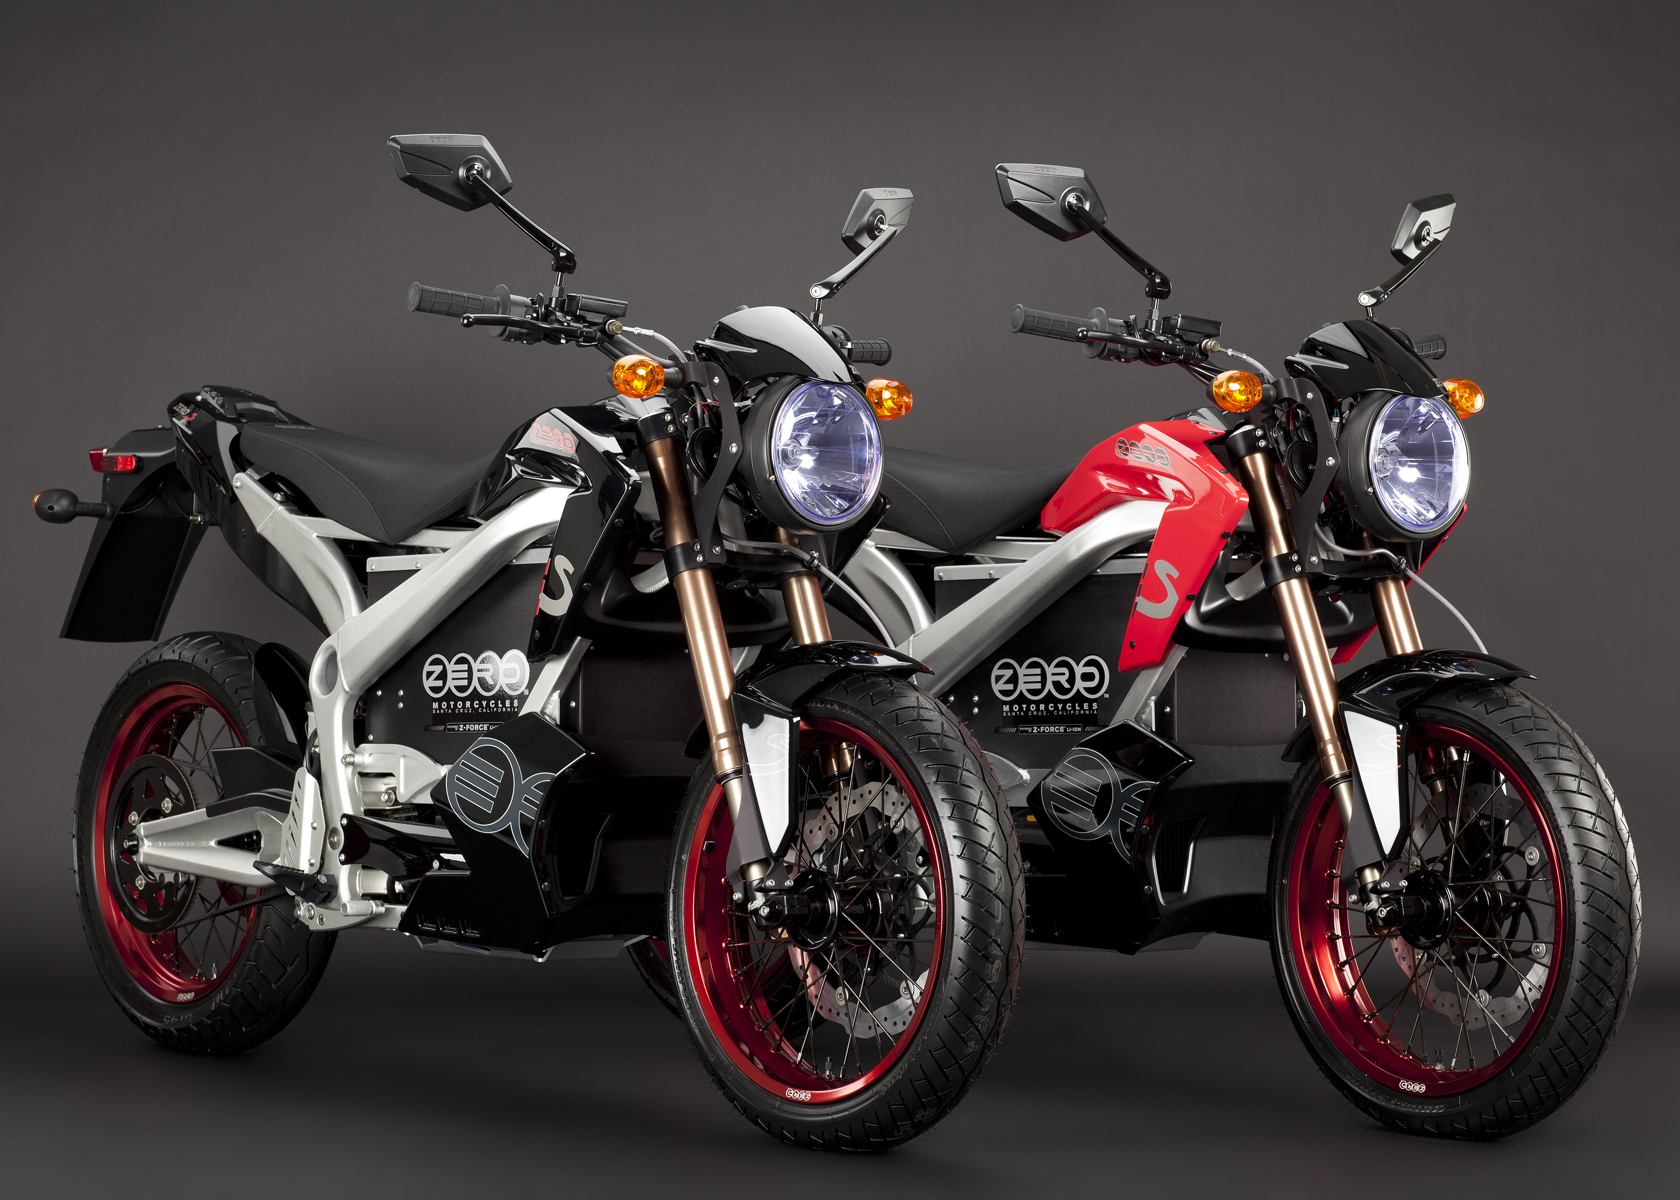 2011 Zero S Electric Motorcycle: Pair, Black and Red